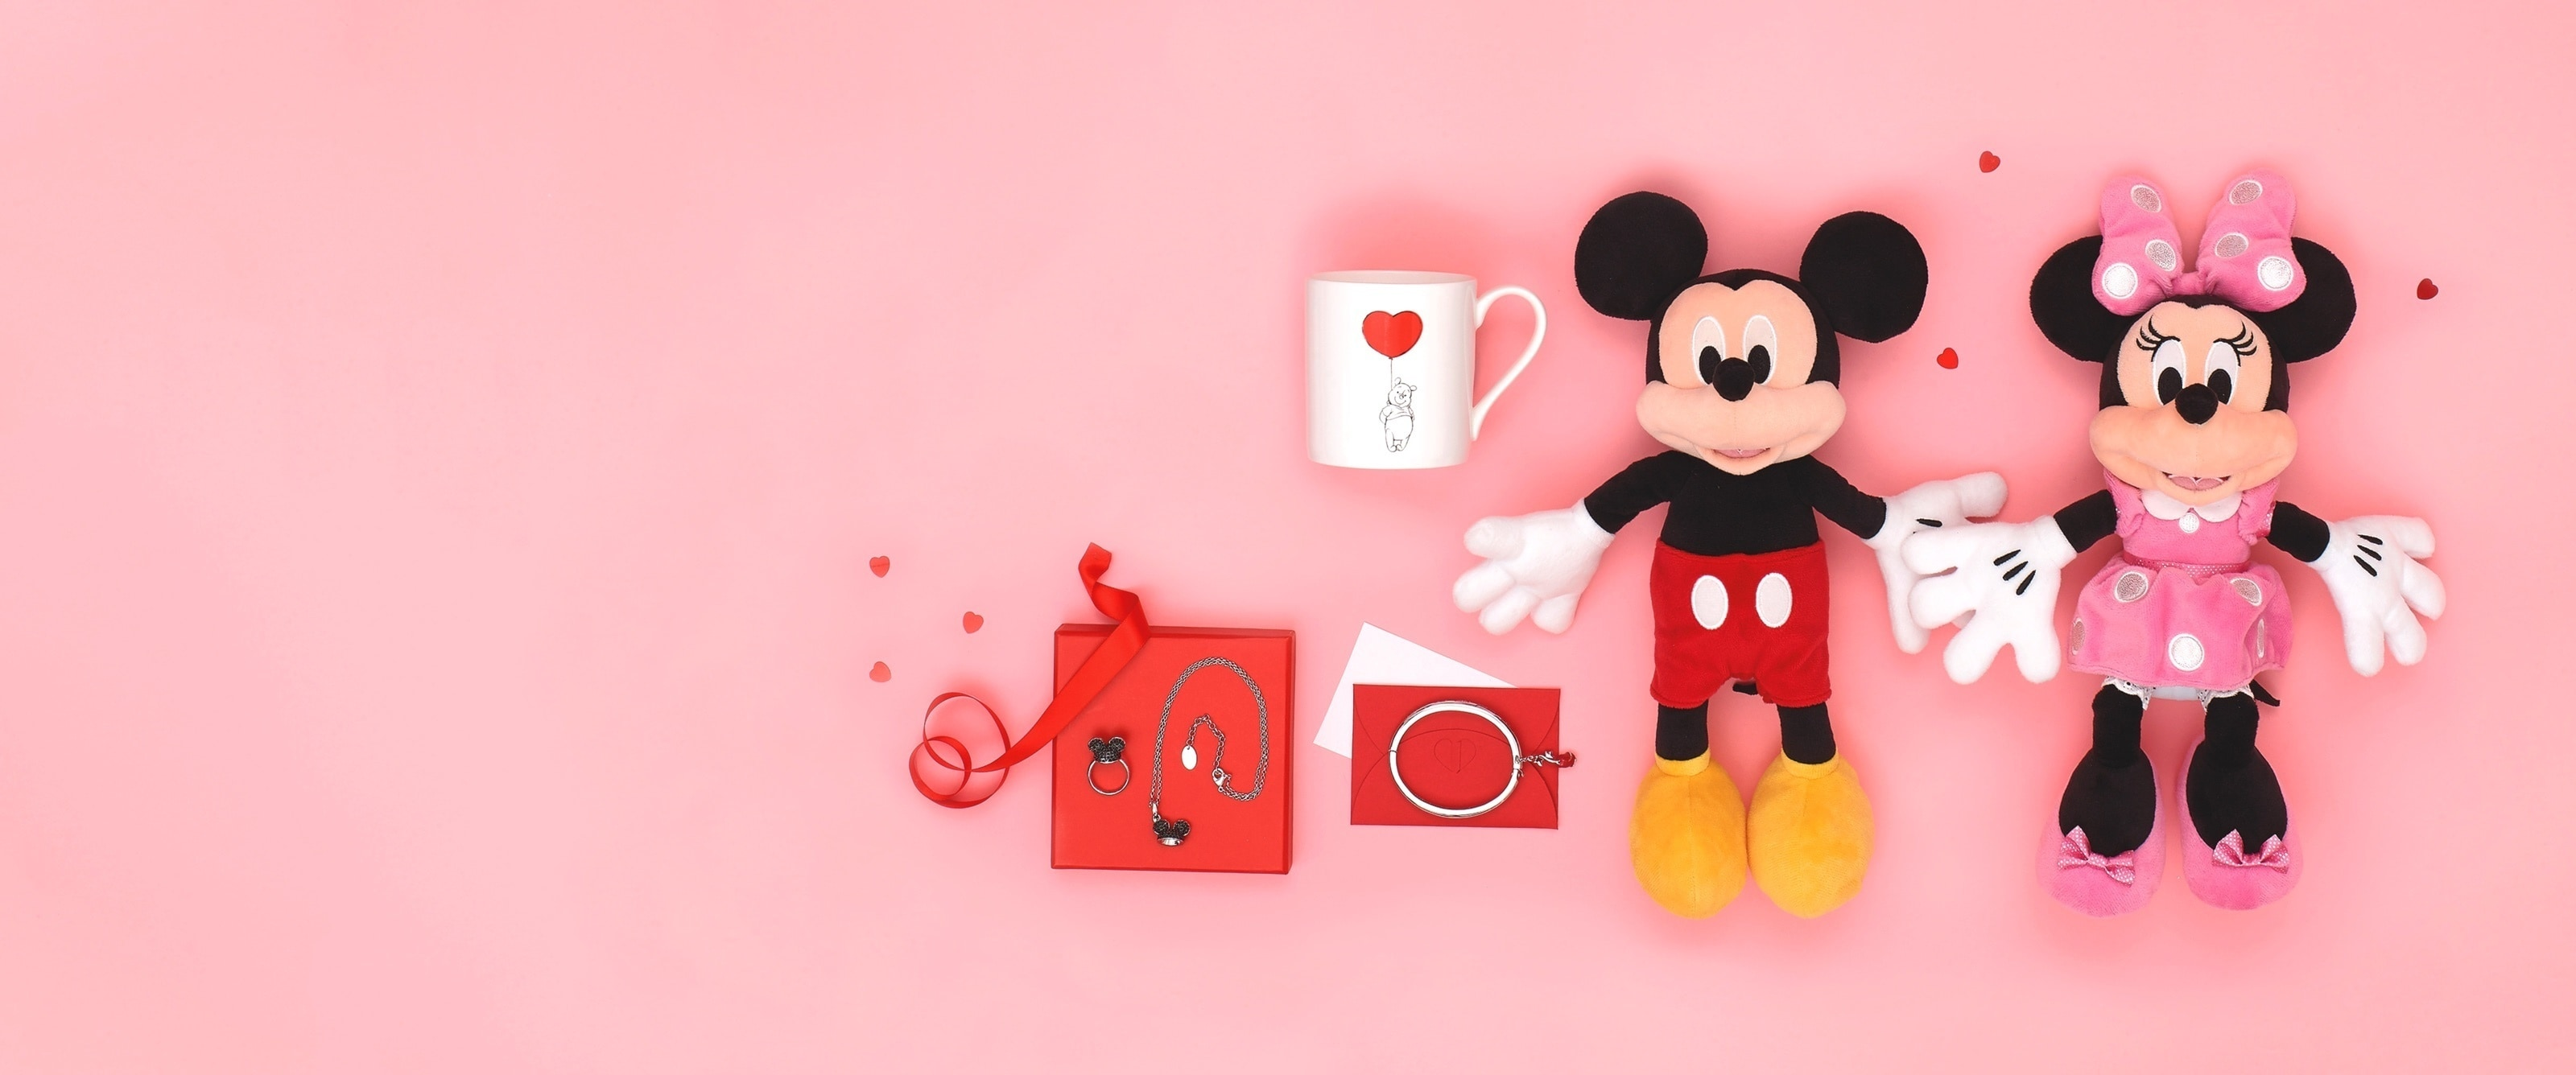 shopDisney | Valentines Day Article Hero